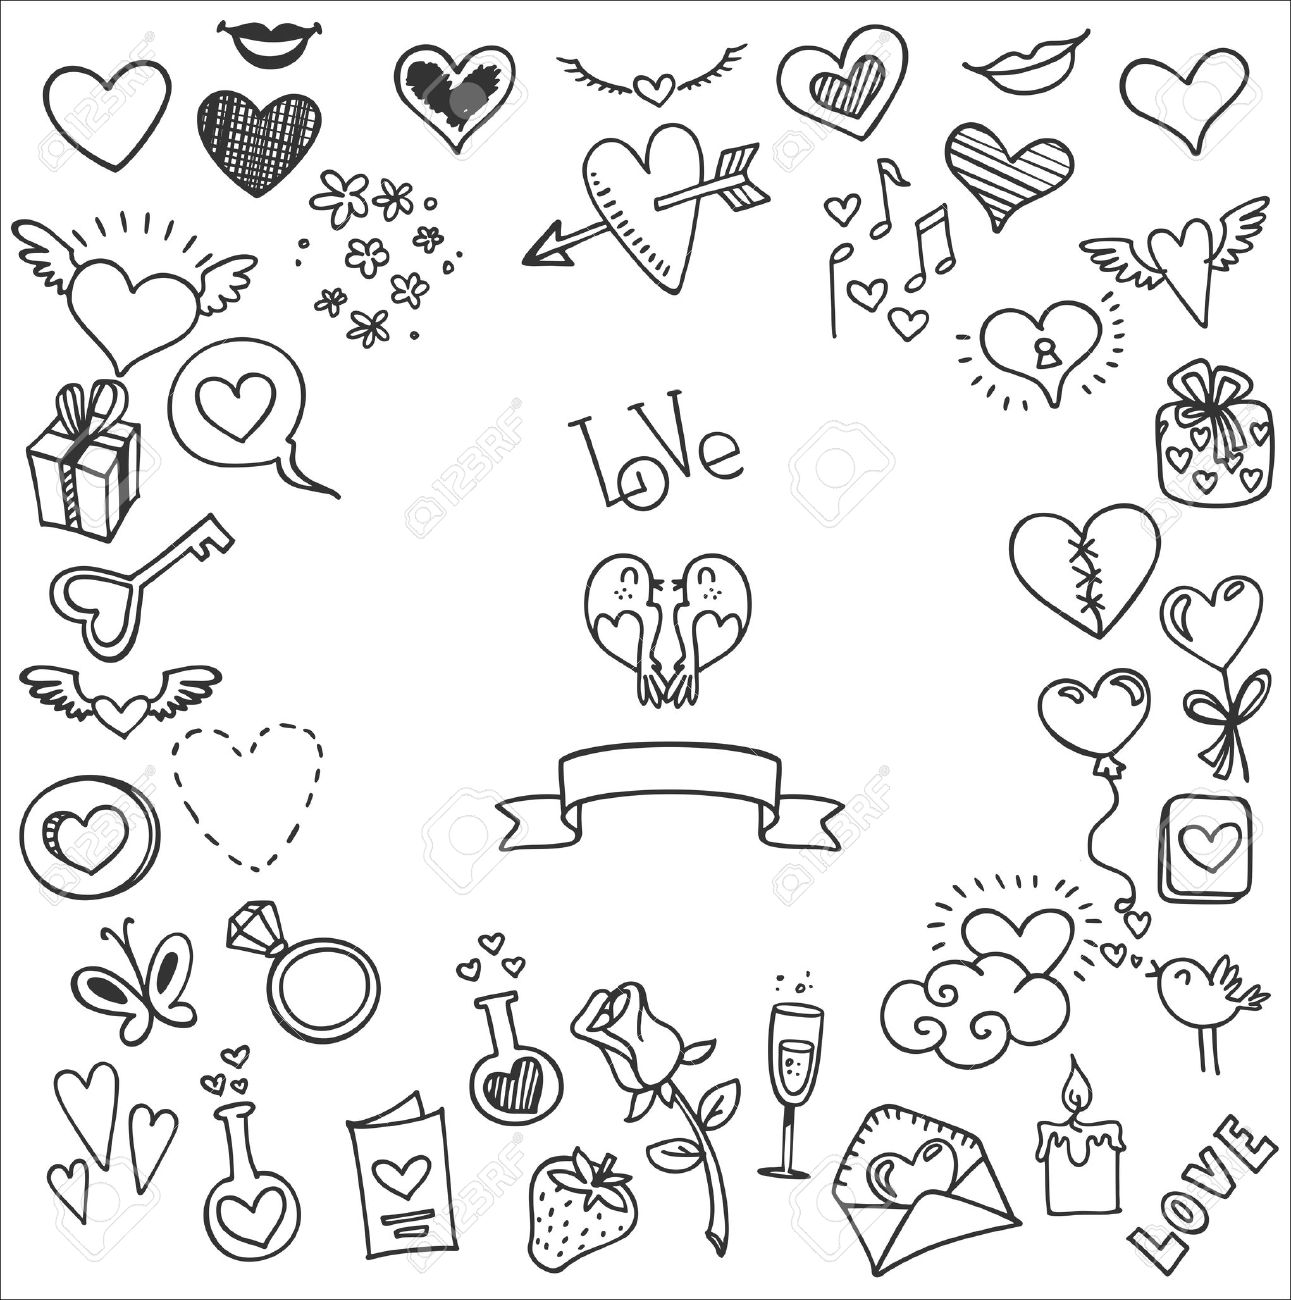 sketchy love and hearts doodles, vector illustration Stock Vector - 50570178